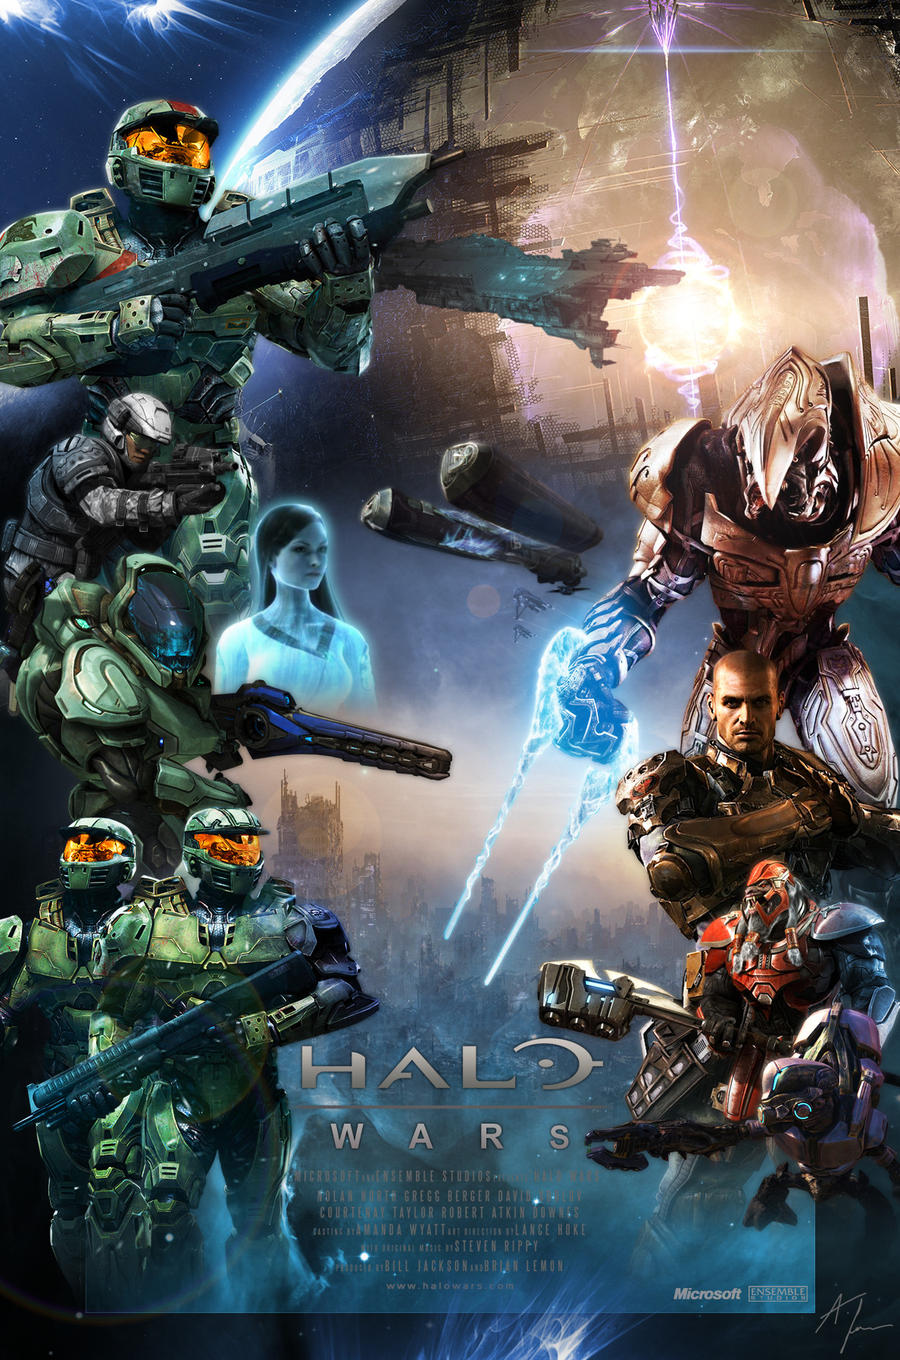 Halo Wars Theatrical Poster by Kakkay on DeviantArt